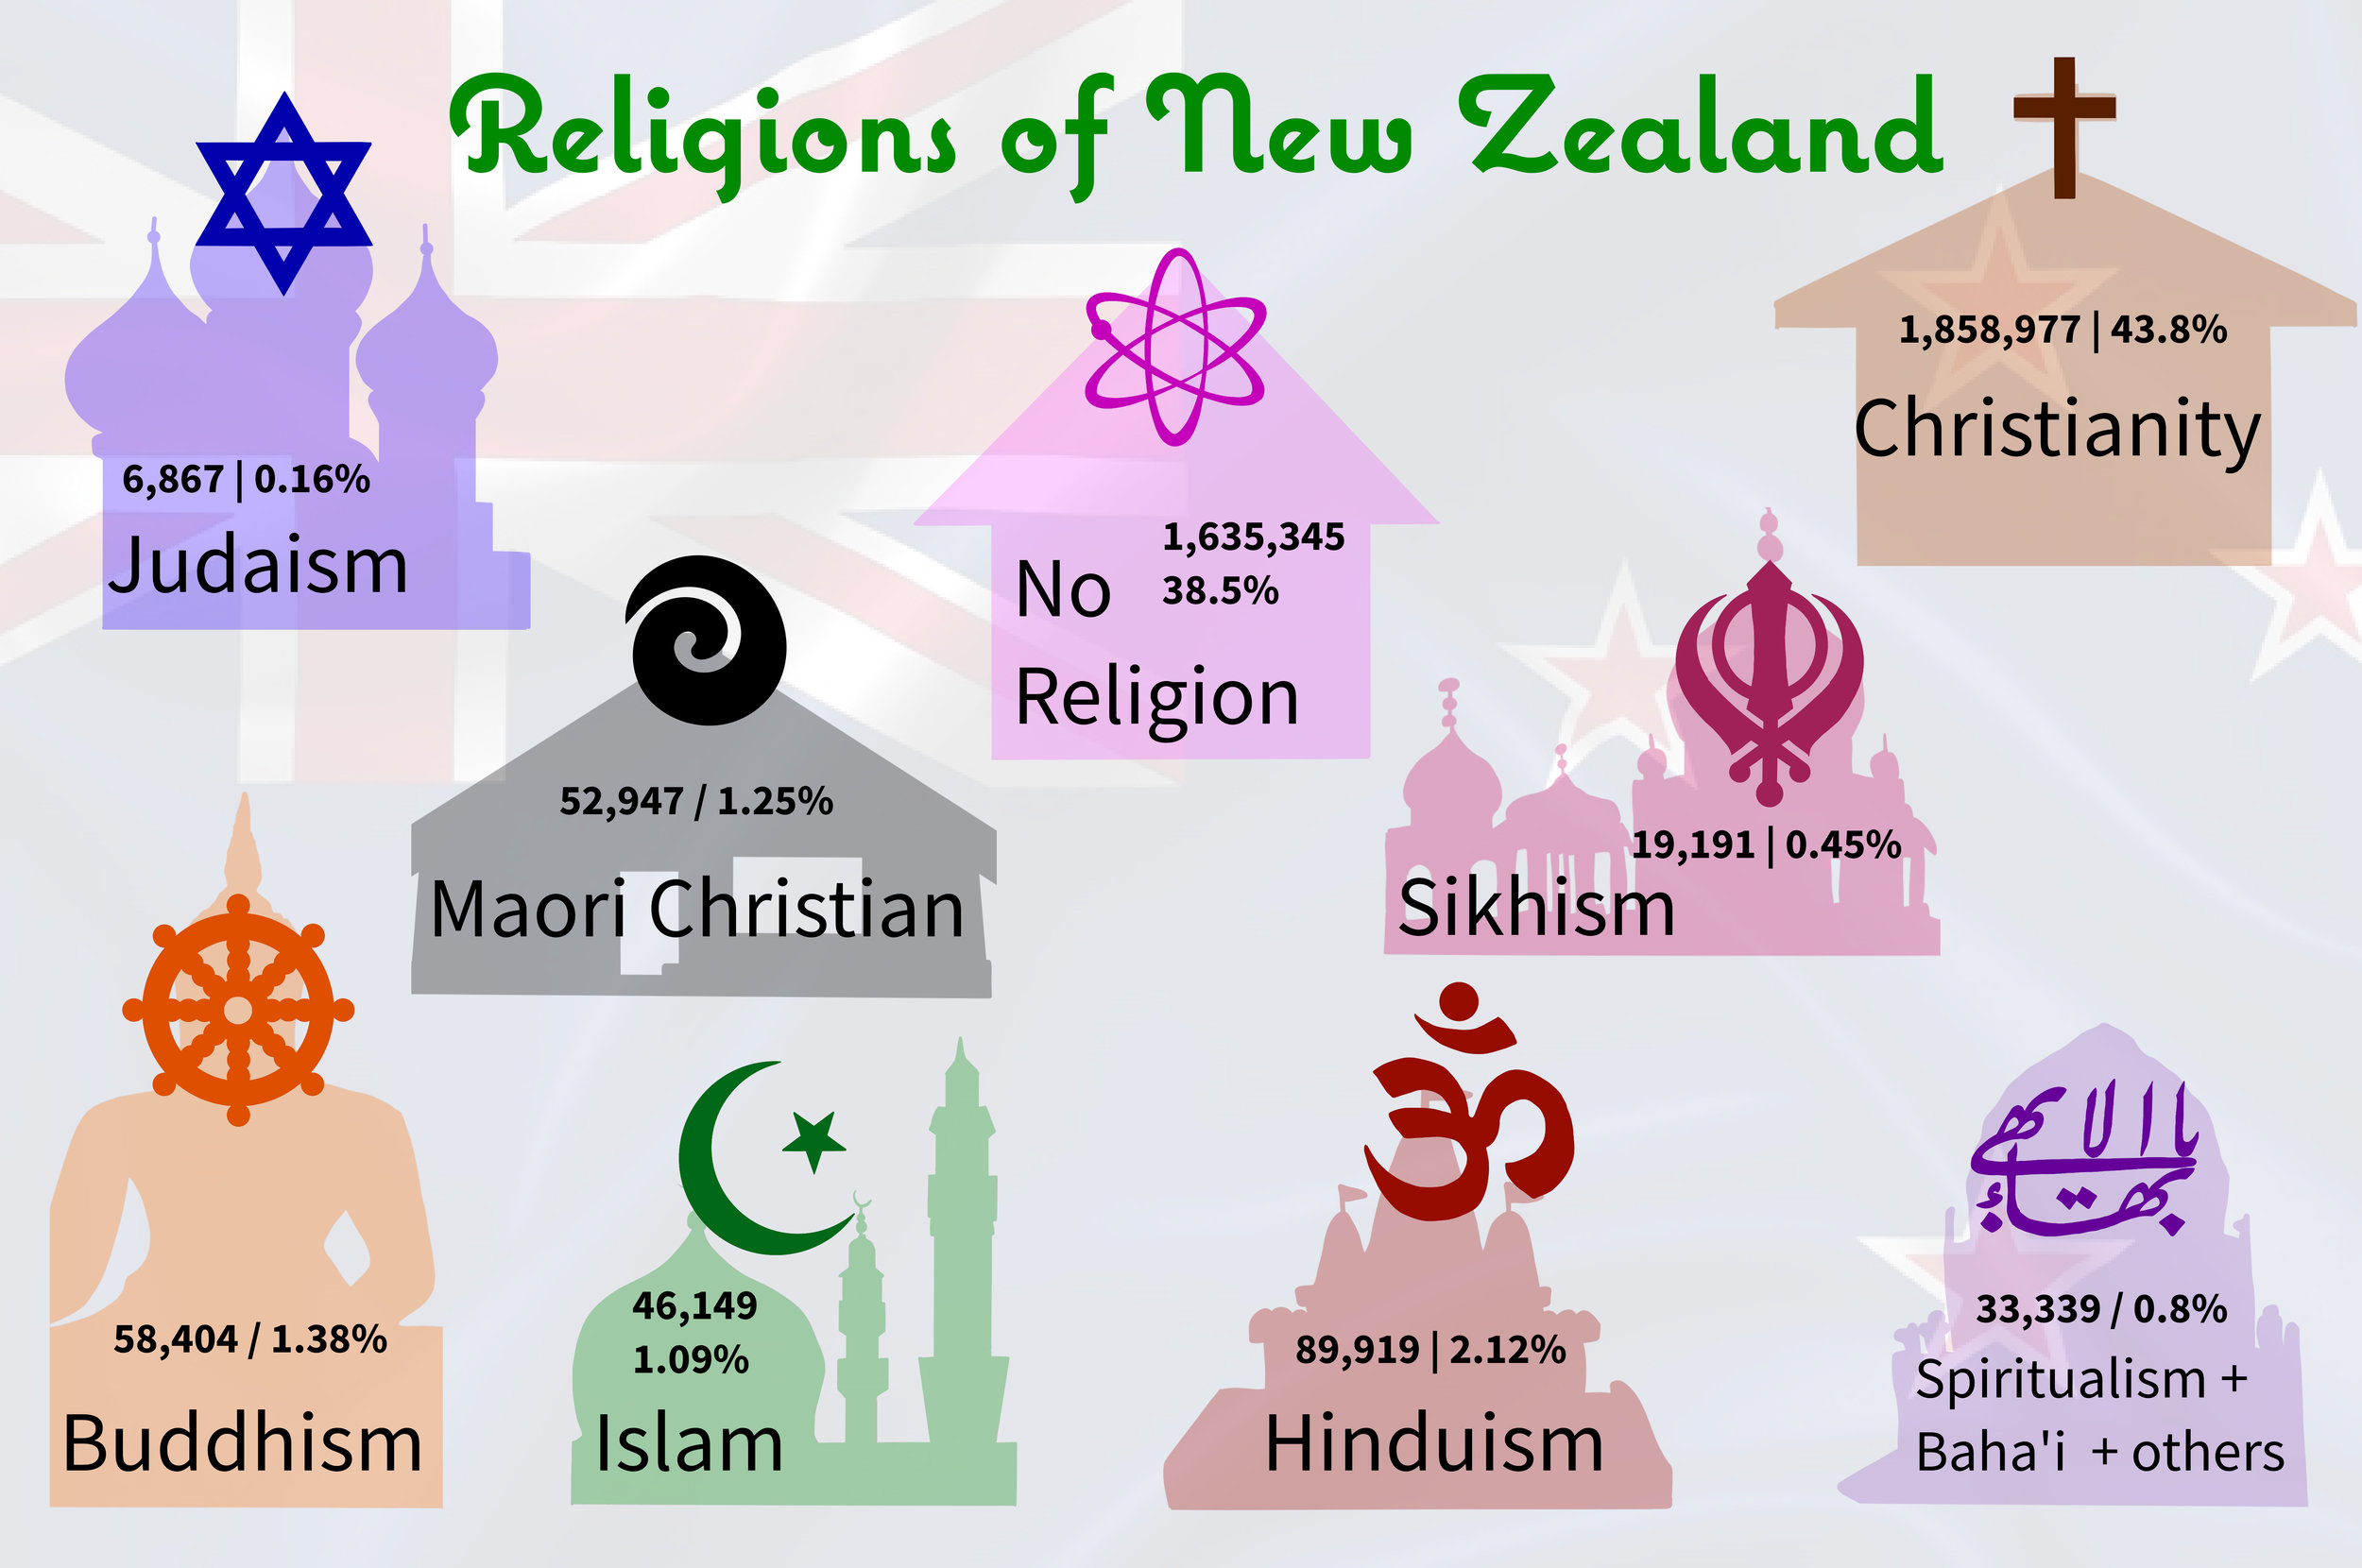 All the above data is from Census 2013. All religious symbols used in this illustration are for indicative purposes only and the newspaper unreservedly apologises for any unintentional error in representation.